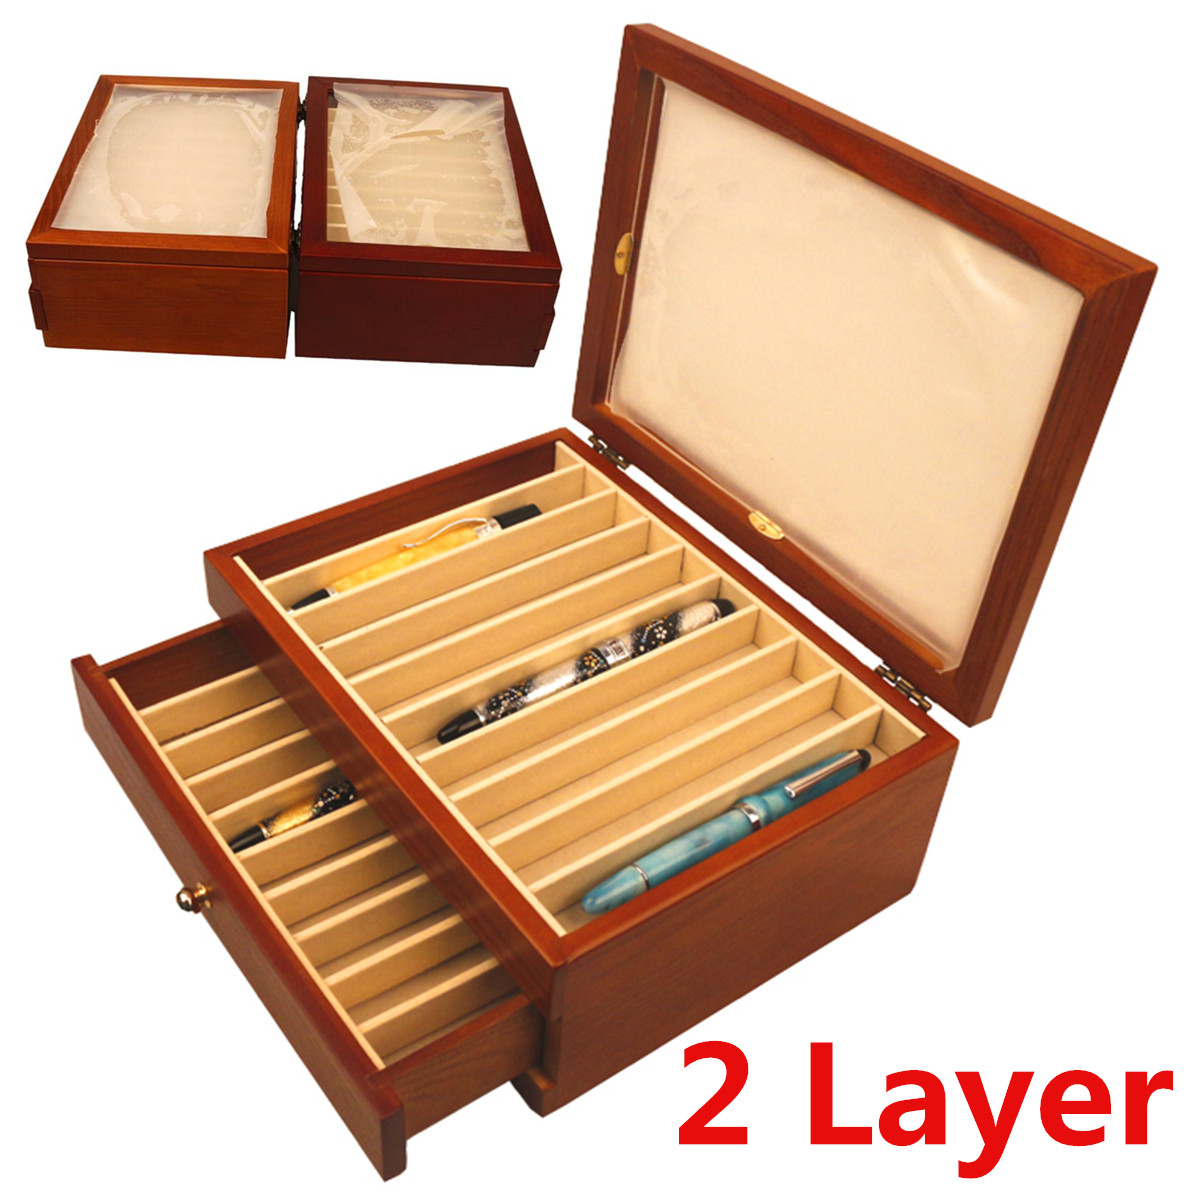 2 Layer Large-capacity Wooden Pen Box Wood Pen Box Fountain Pen Pencil Case Display Storage Wood Case 20 Pens Holders2 Layer Large-capacity Wooden Pen Box Wood Pen Box Fountain Pen Pencil Case Display Storage Wood Case 20 Pens Holders